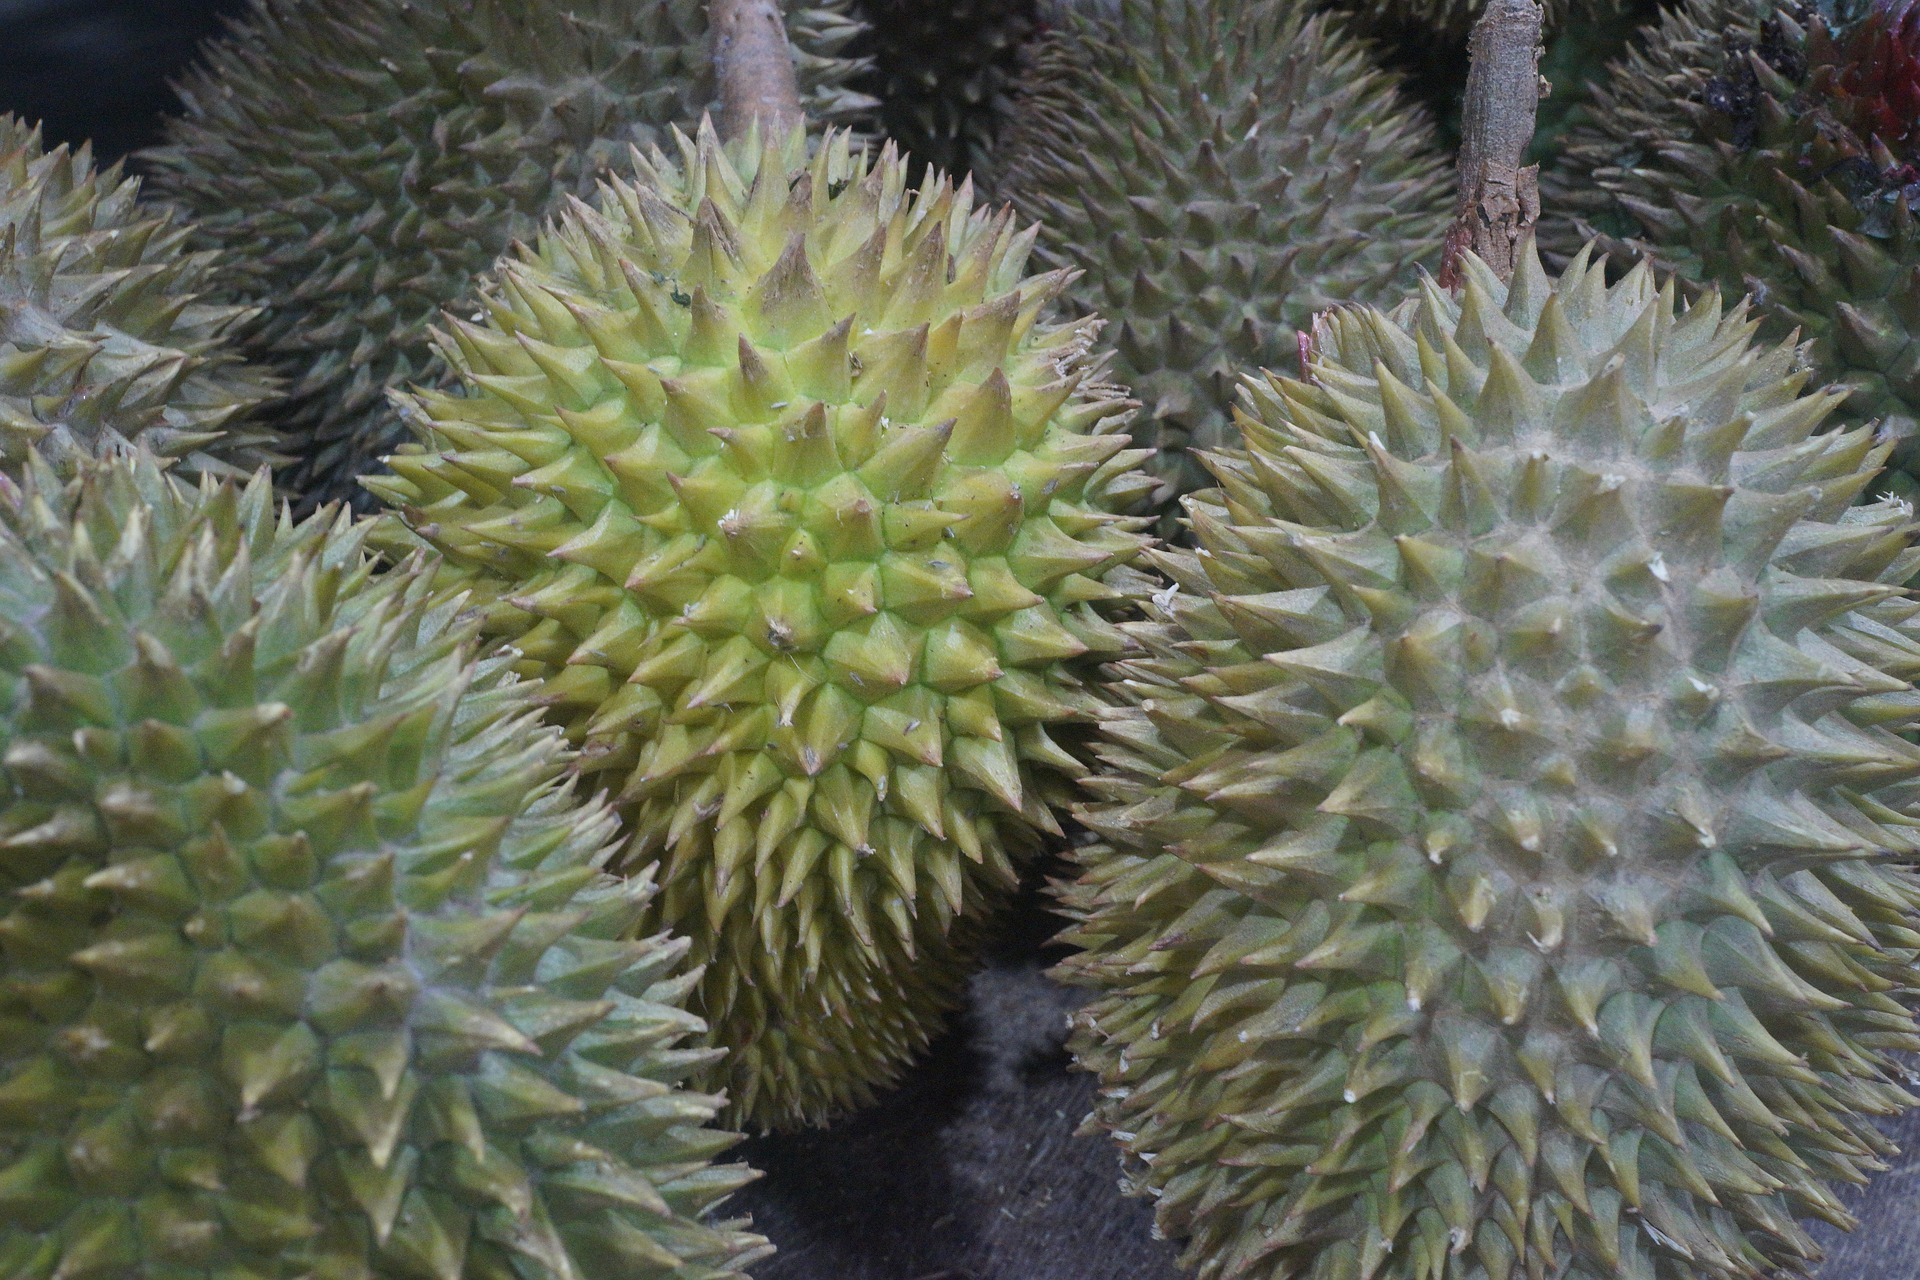 heroin hidden in durian fruit